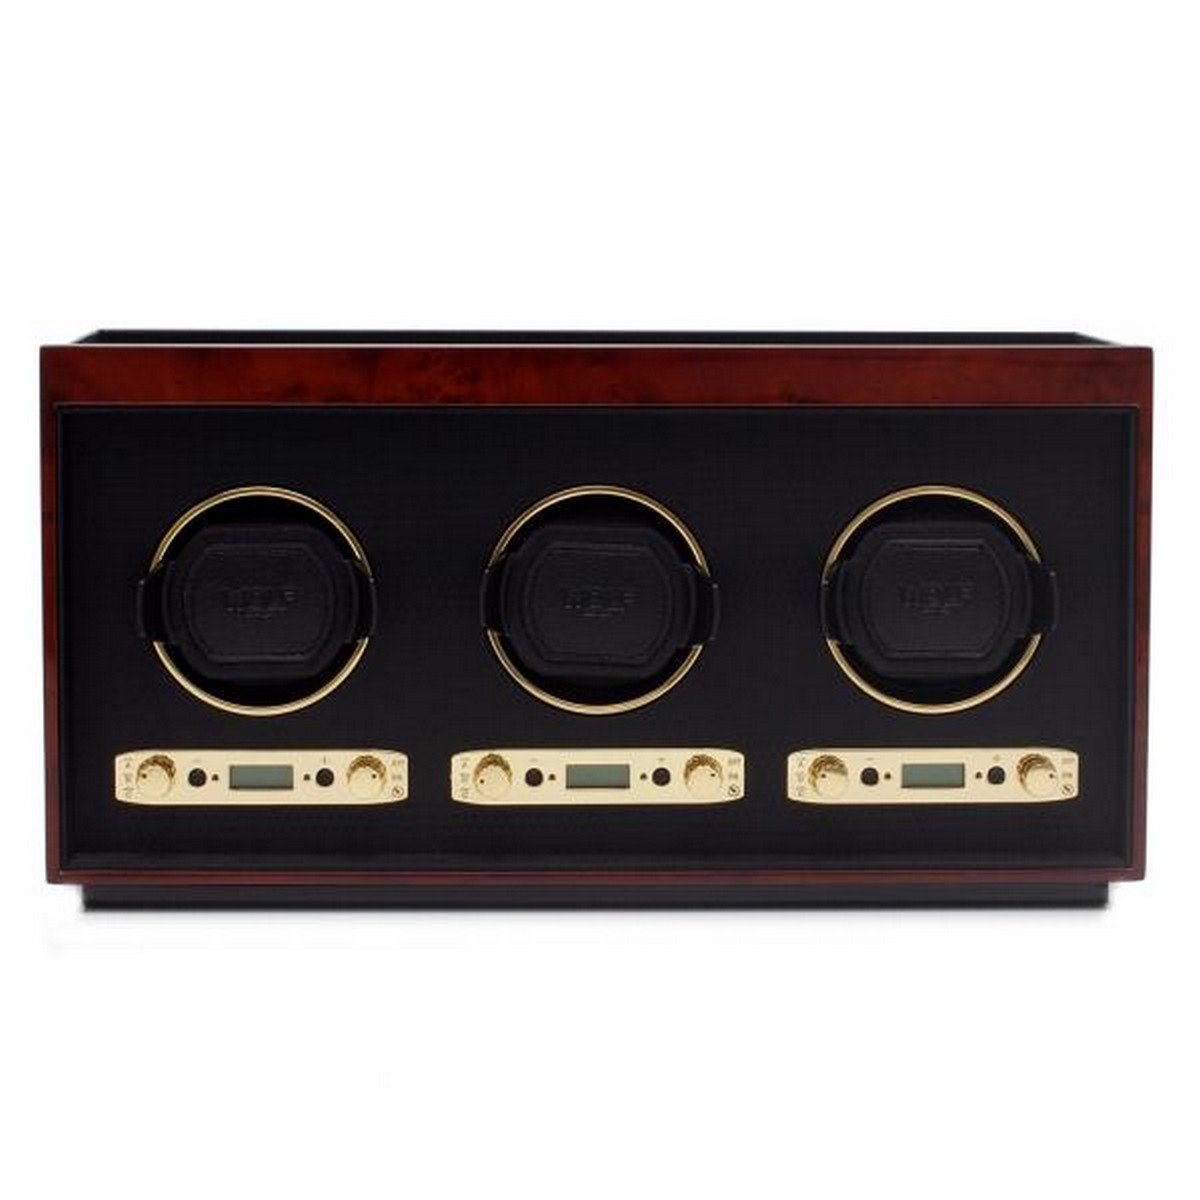 Men's Triple Watch Winder Box Wood Veneer with 57 Winding Programs for Home or Travel in 3 Colors by Allurez